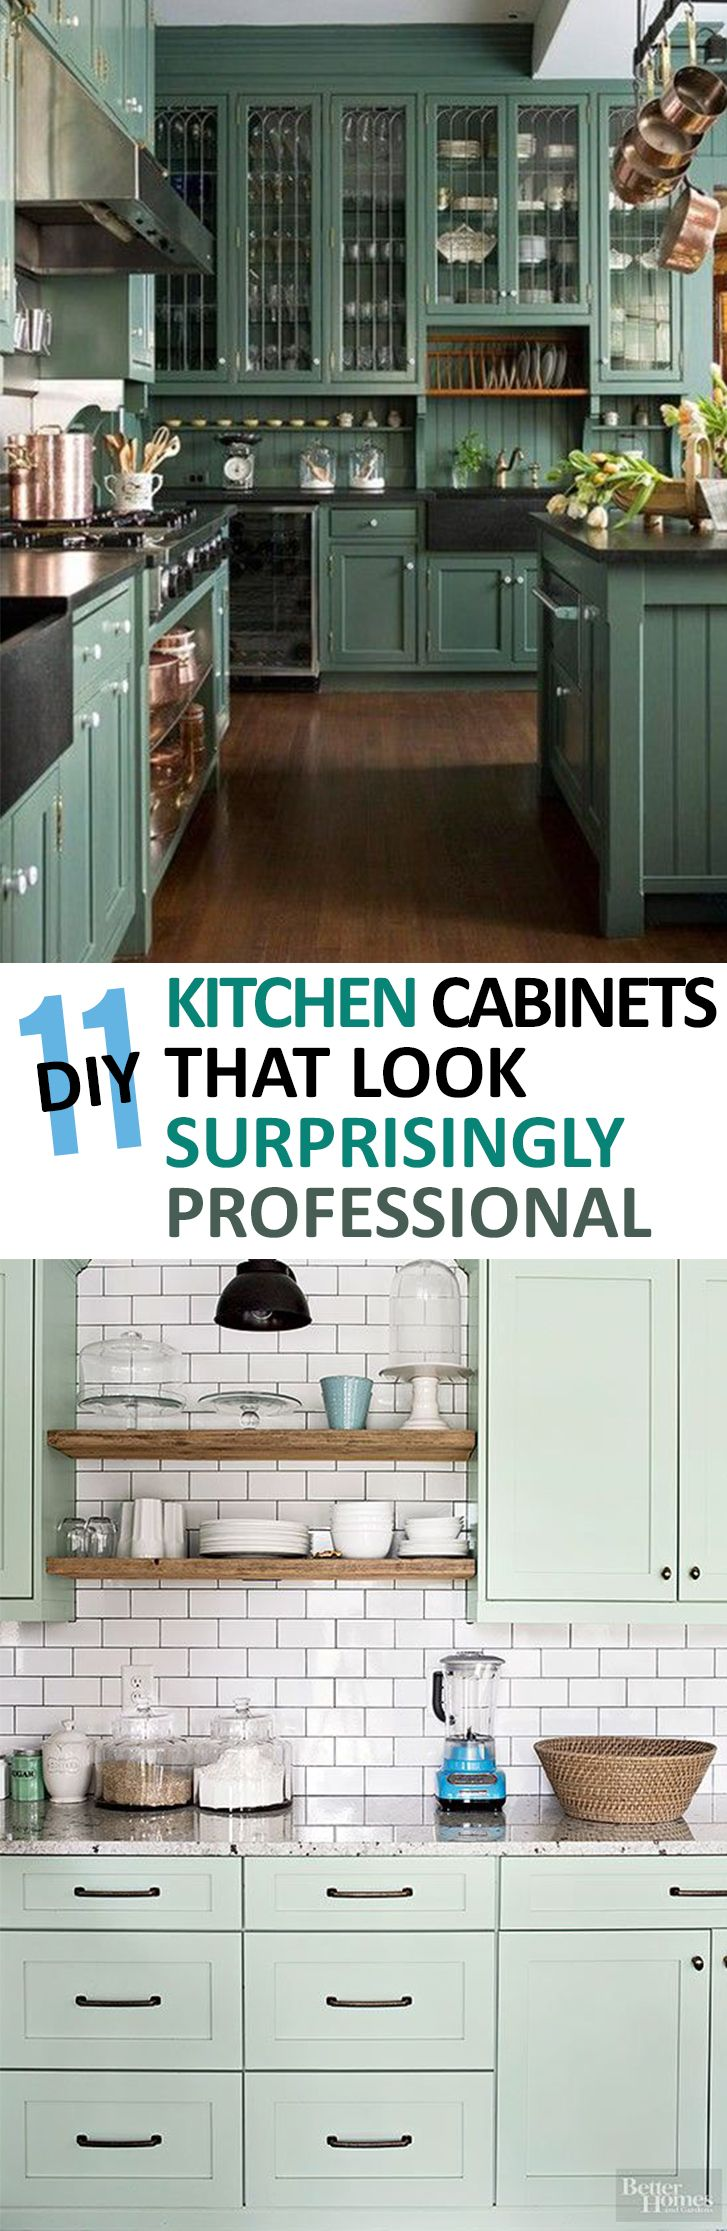 Remodel Kitchen Cabinets Get 20 Kitchen Cabinet Remodel Ideas On Pinterest Without Signing